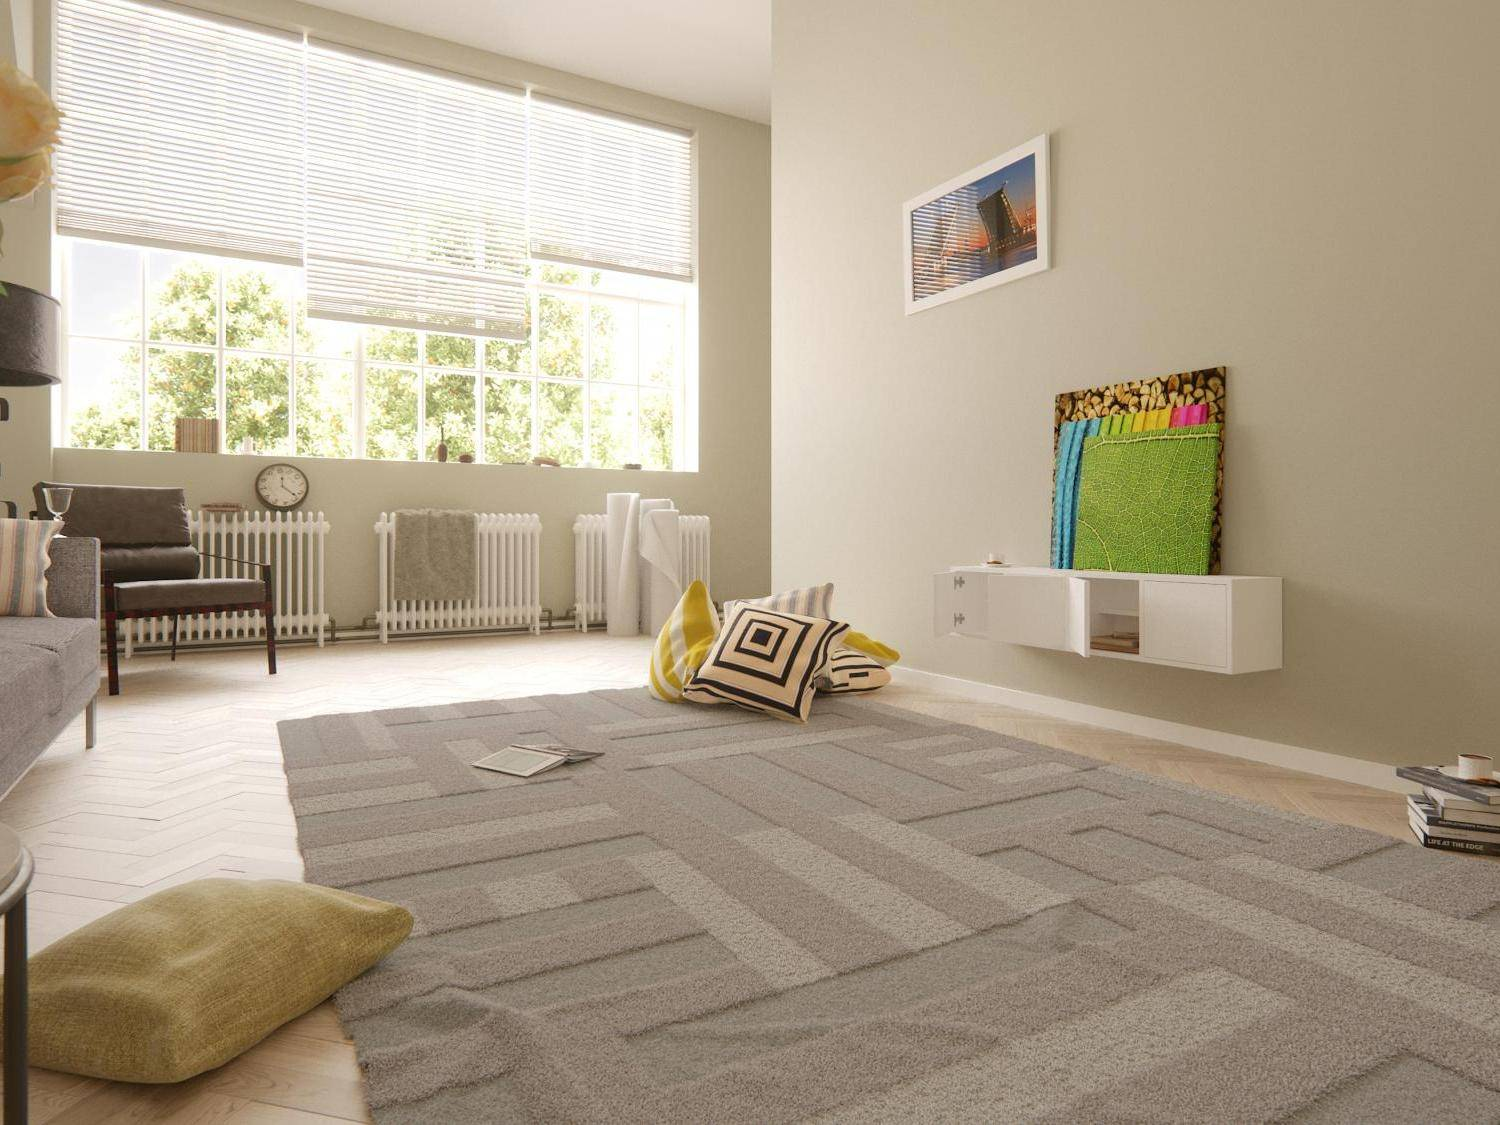 New tutorial on how to create Parquet Floors and Rugs for Interior Visualisations